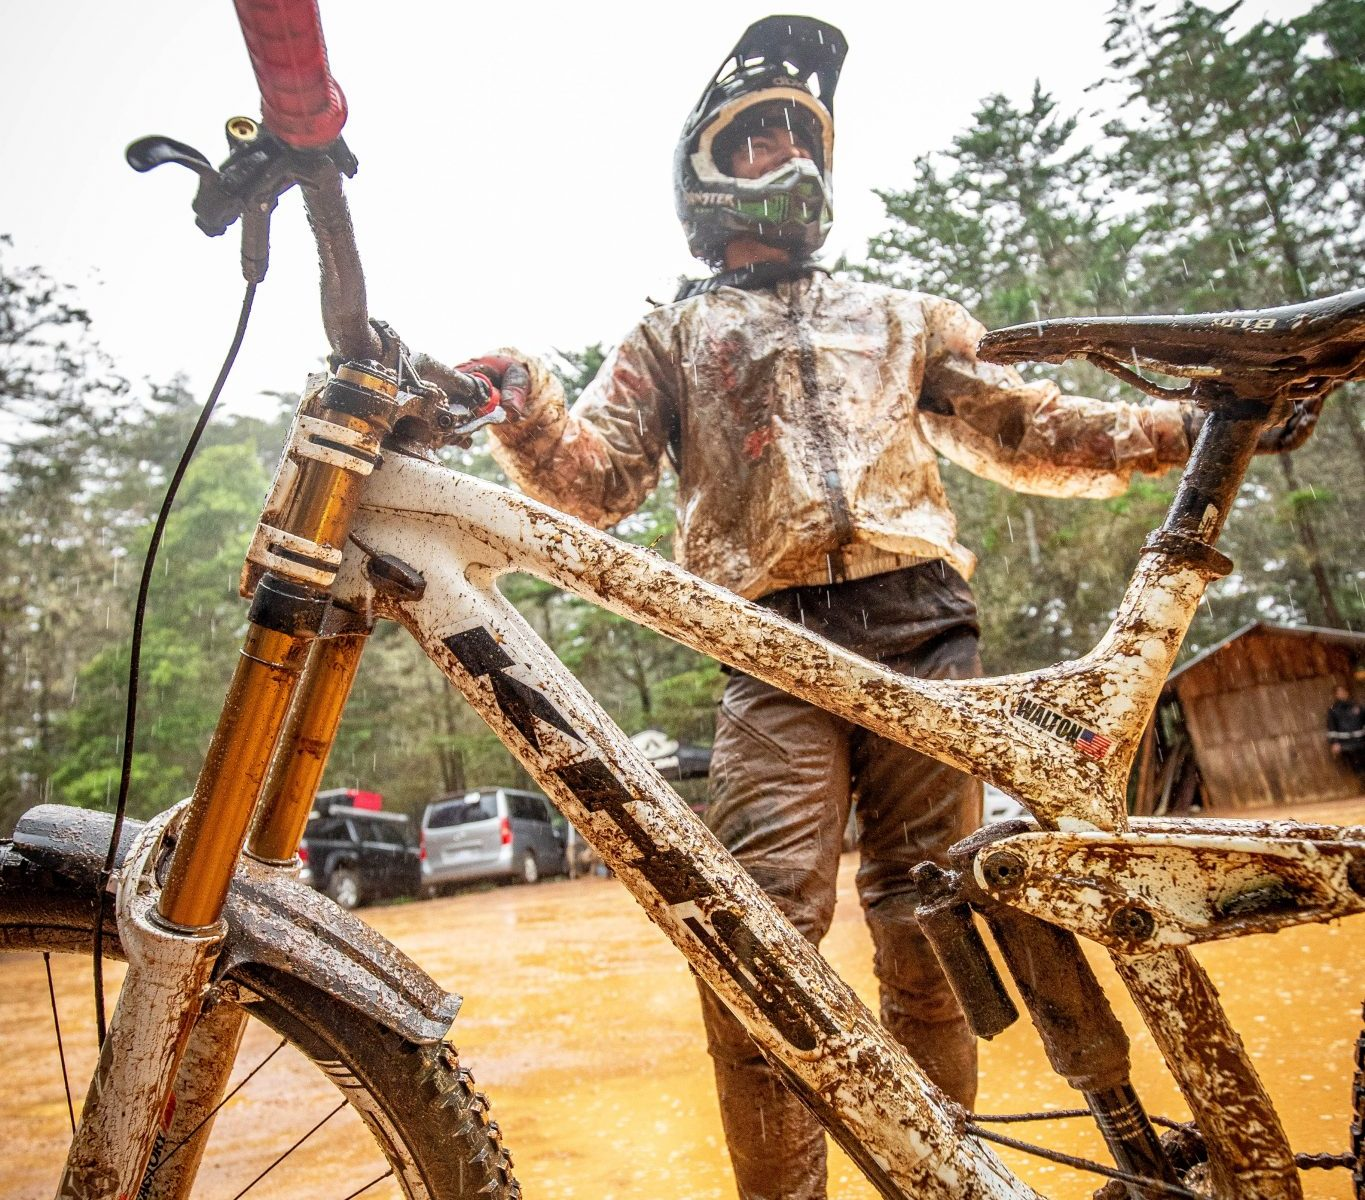 KHS Pro MTB rider Nik Nestoroff taking a breath after a practice run in the Costa Rican mudd.